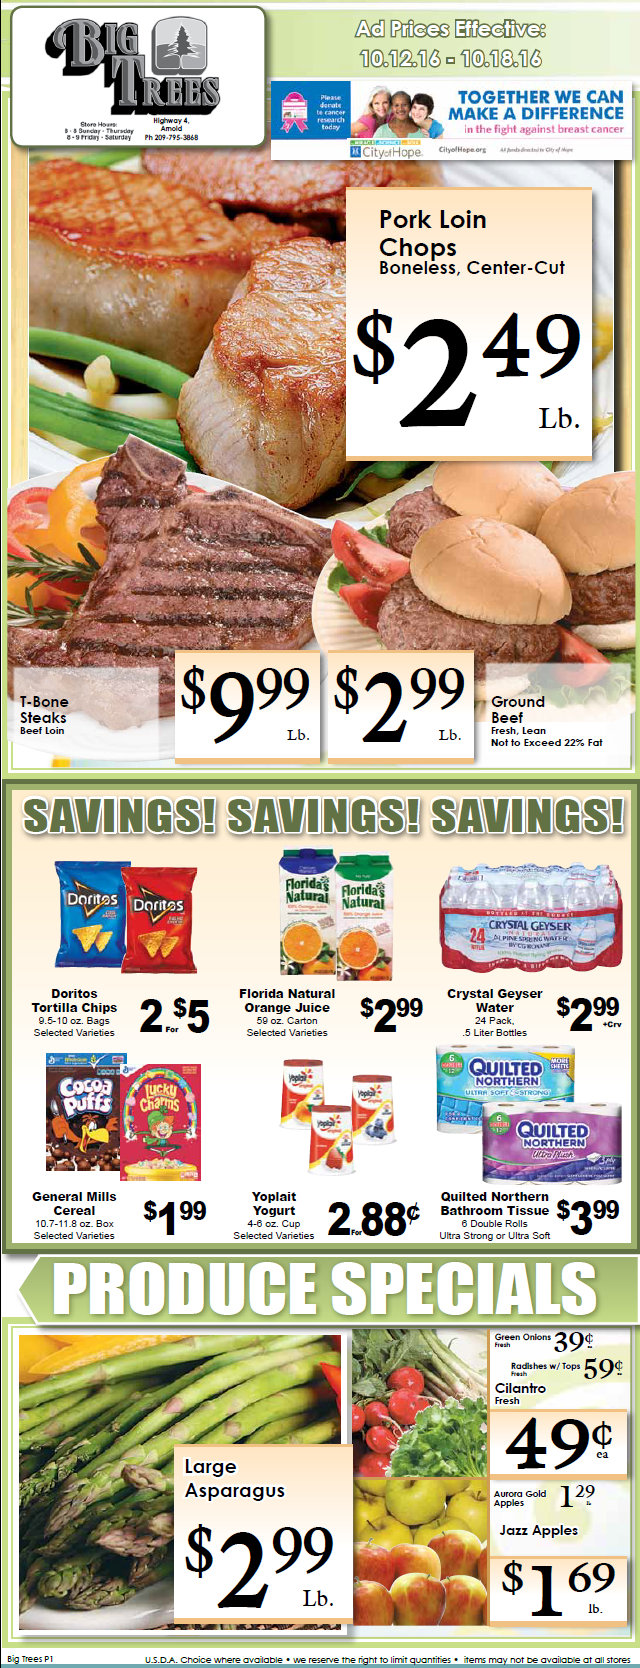 Big Trees Market Weekly Ad & Specials Through October 18th